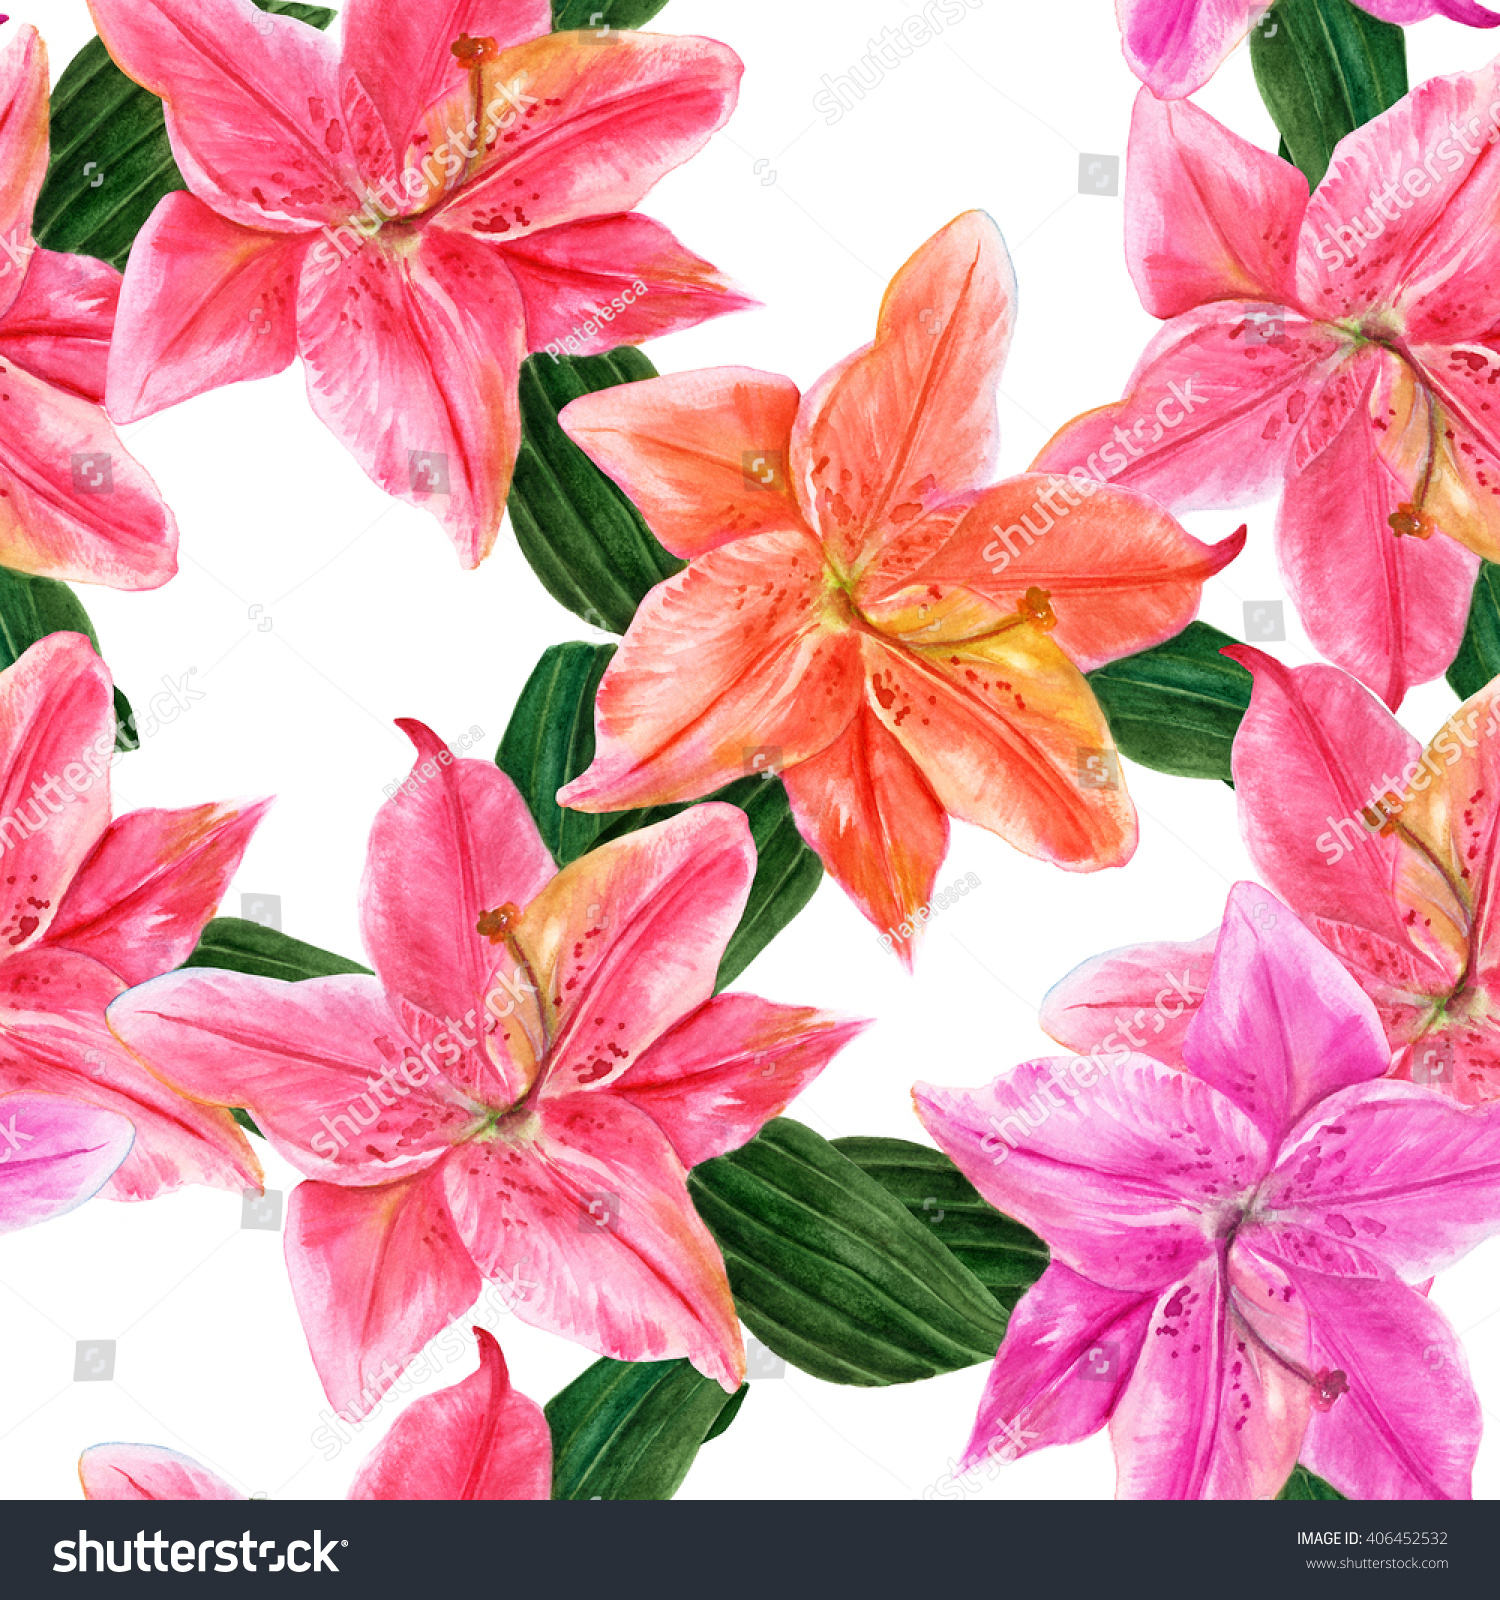 Watercolor set of rose lily flowers with leaves ez canvas izmirmasajfo